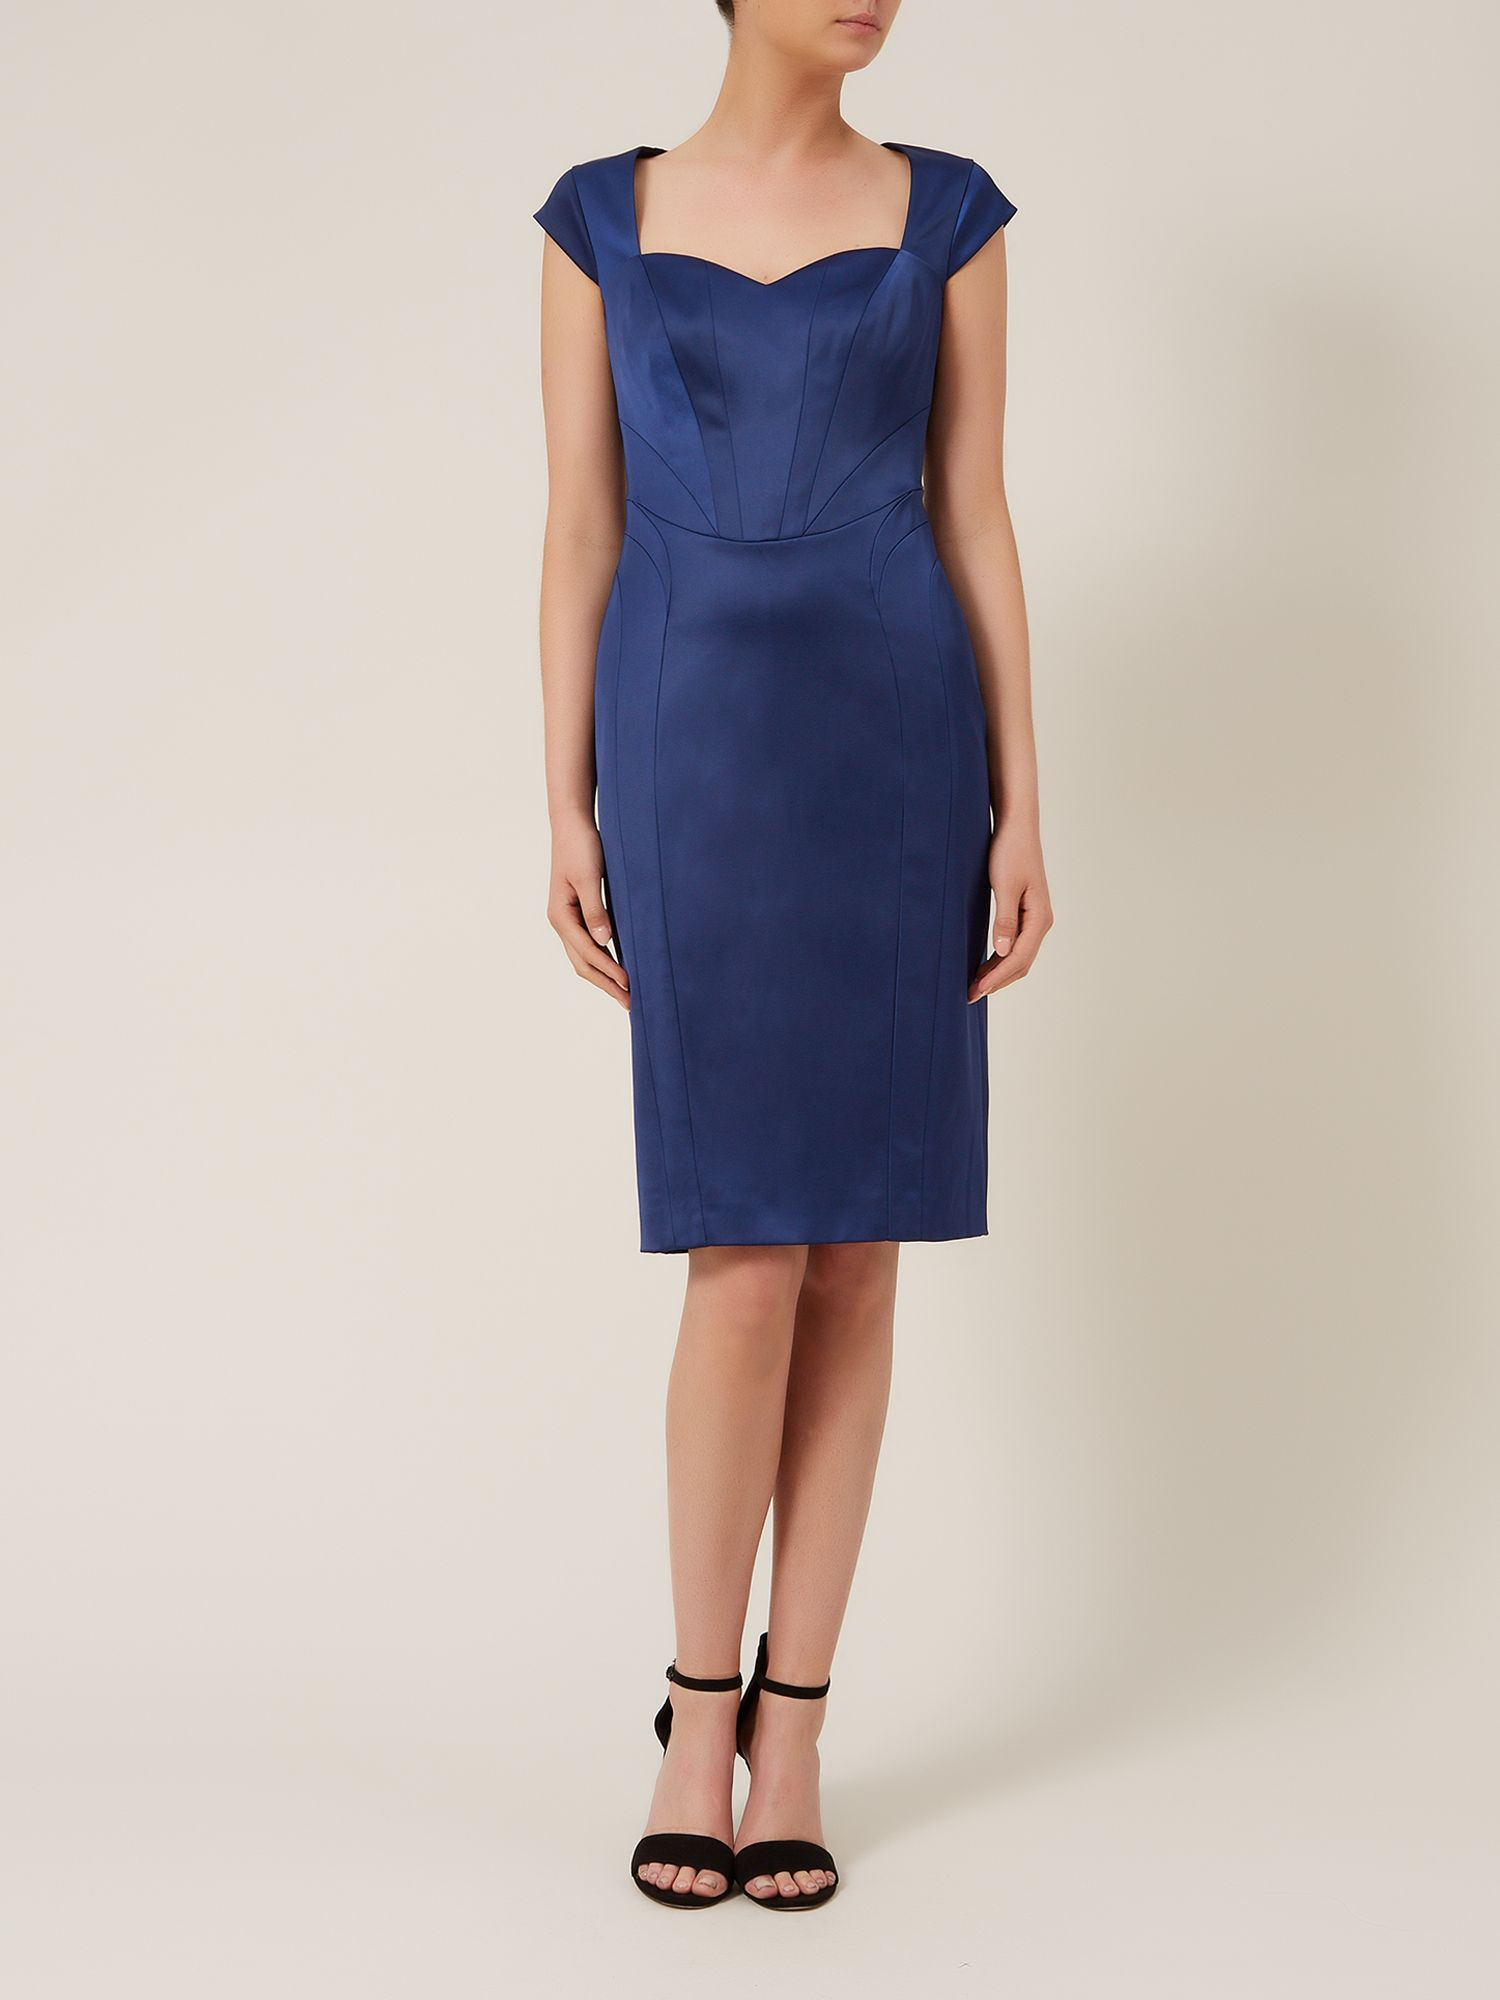 Cap sleeve ergonomic dress